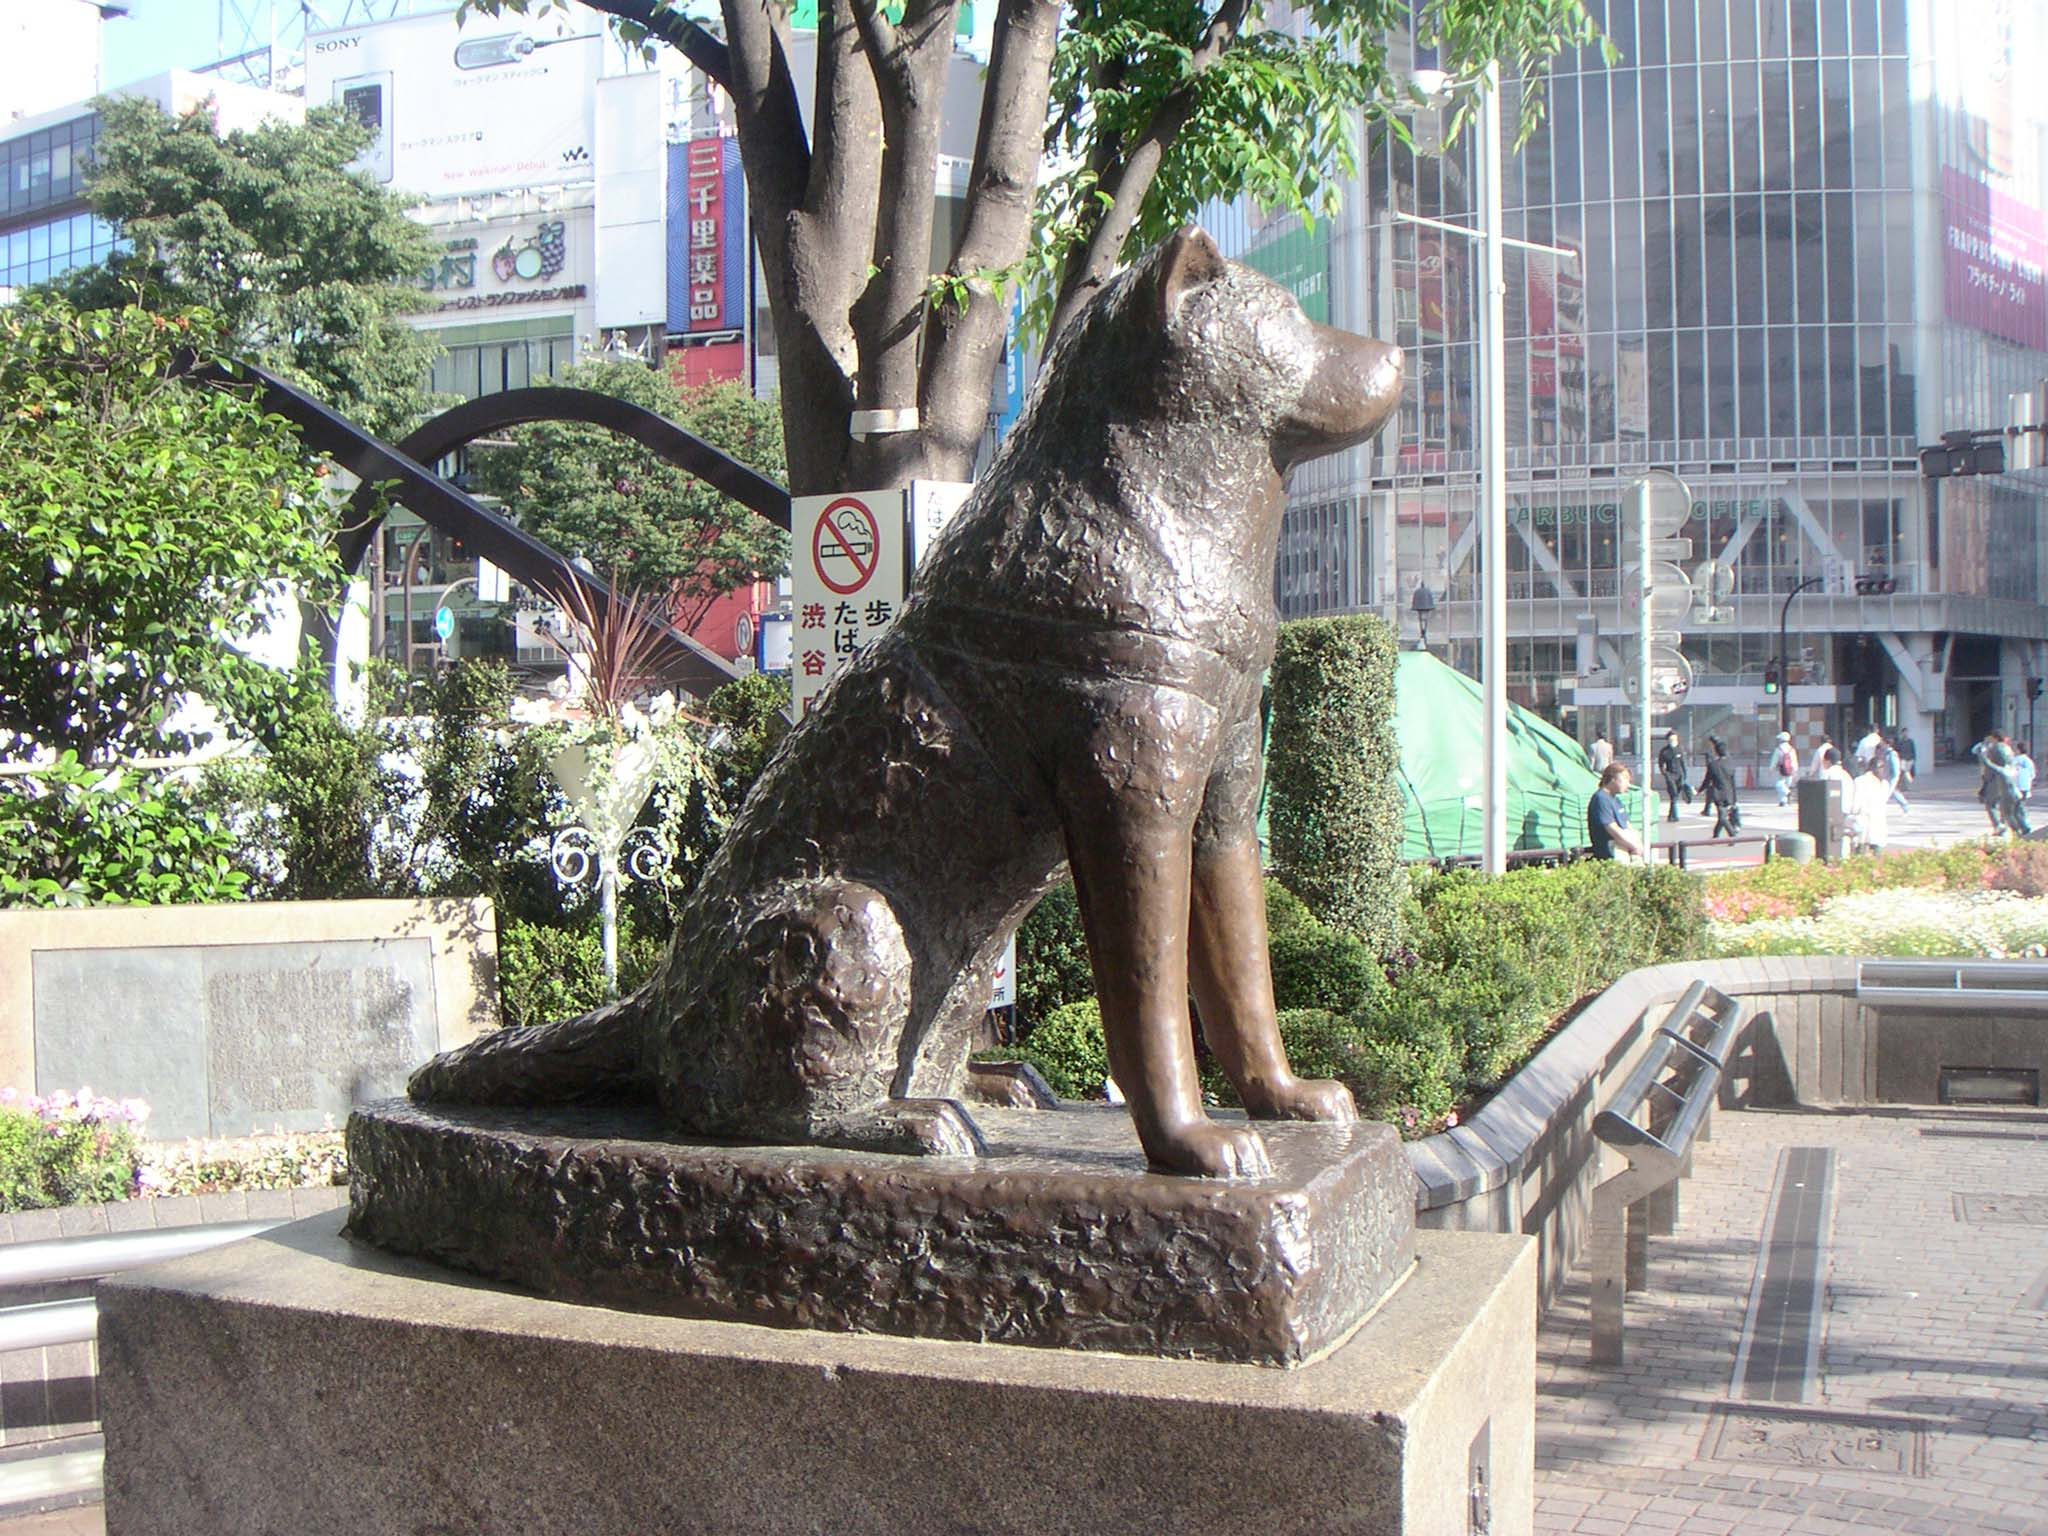 hachiko-statue-themost-loyal-dog-in-world